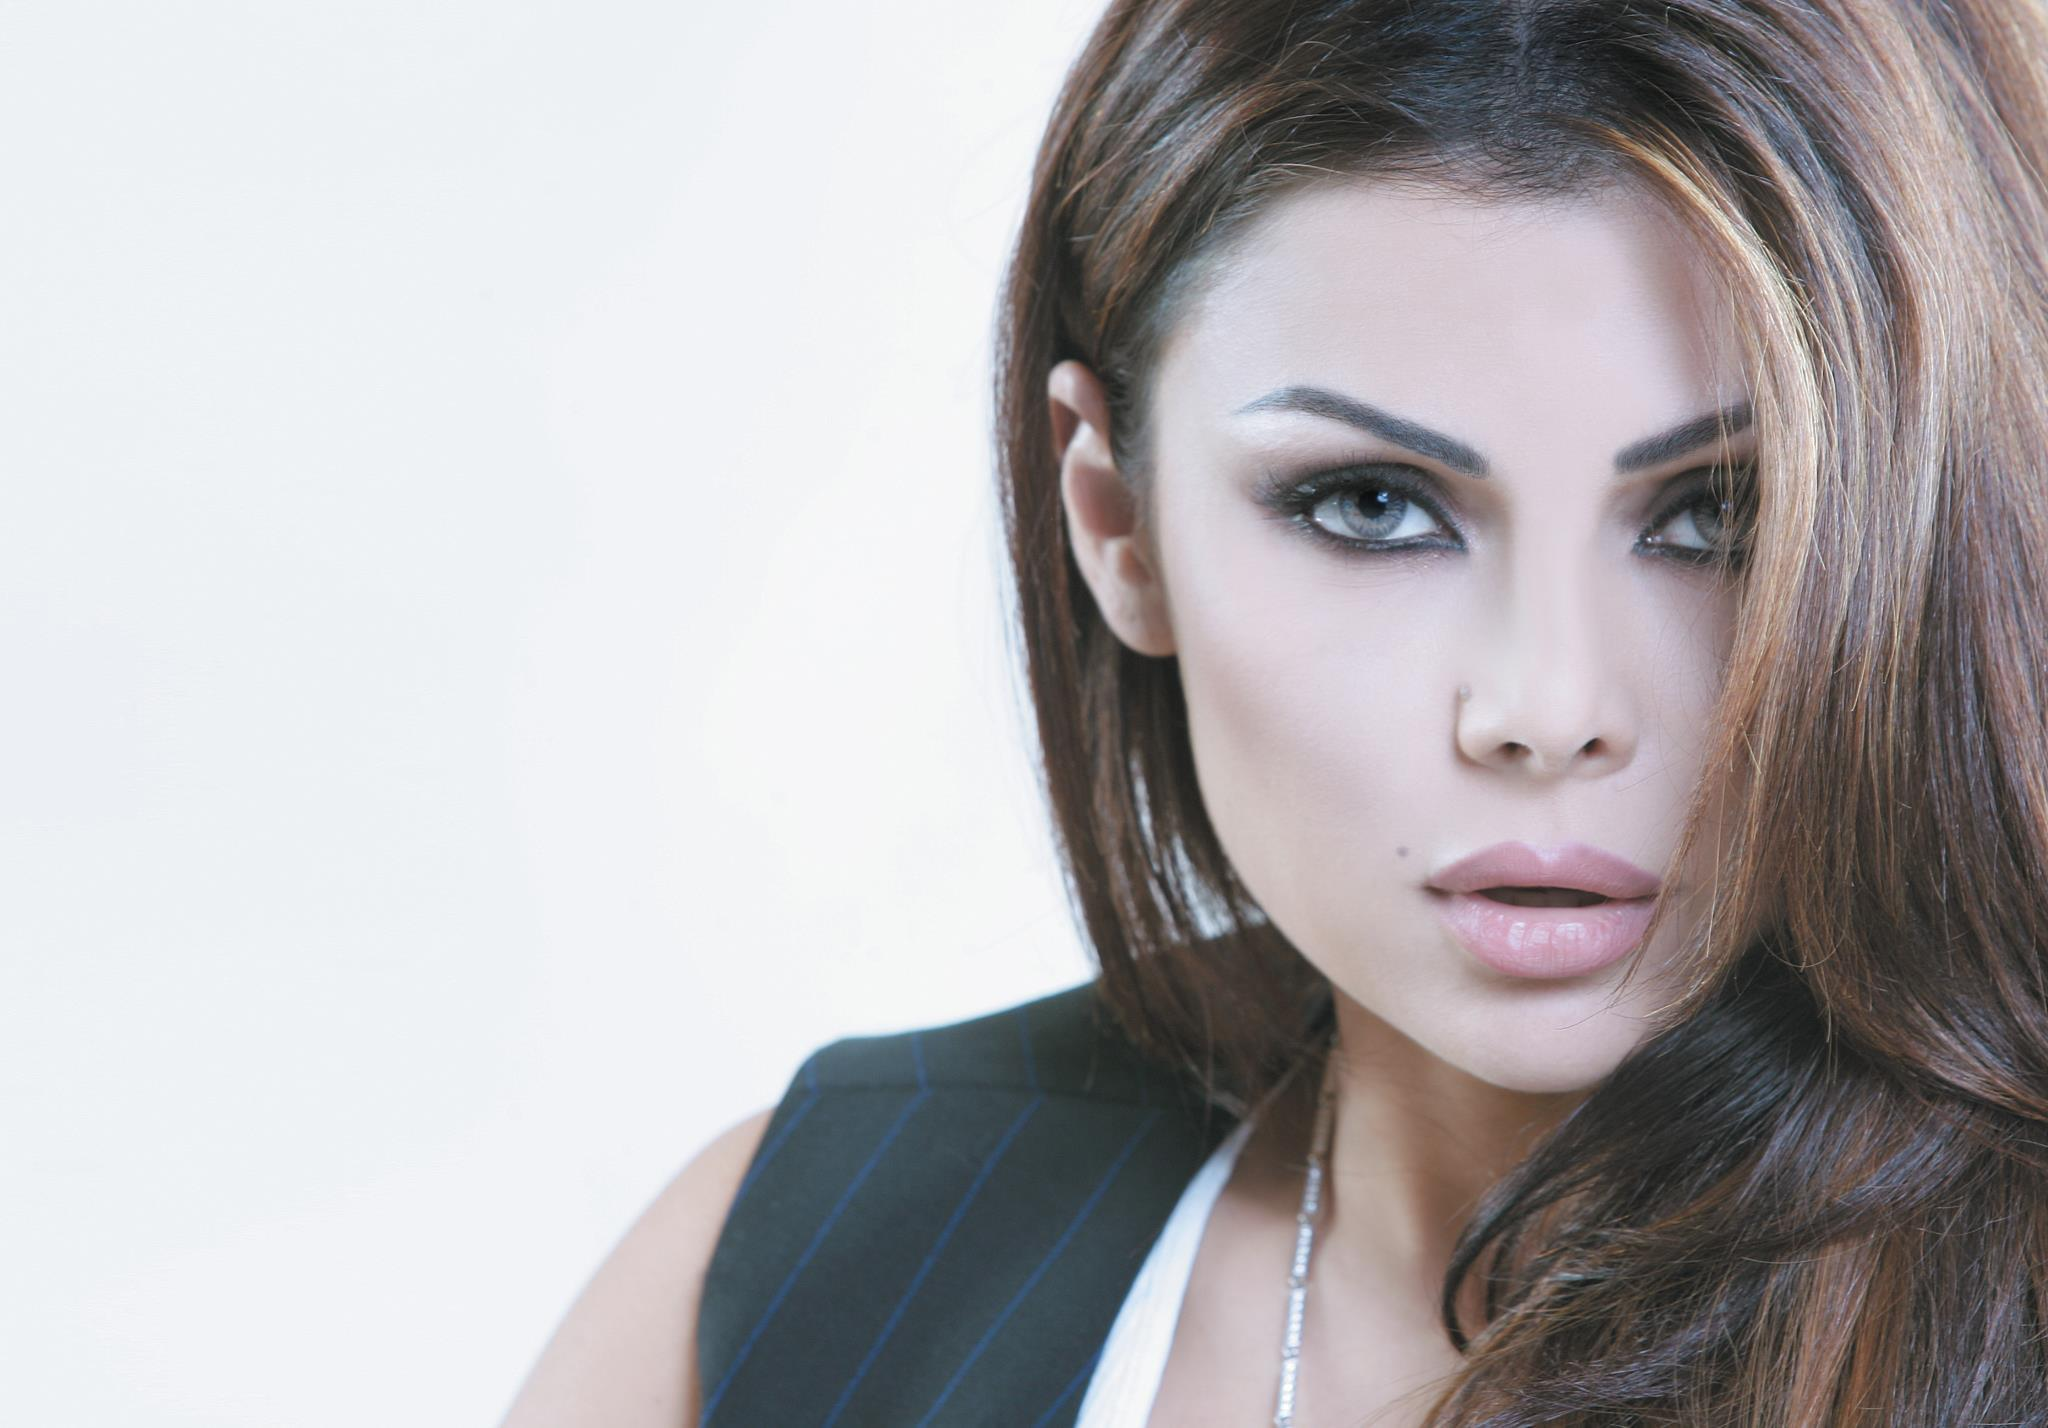 Haifa Wehbe Makeup Hd Wallpaper 638 2048x1428 Px Pickywallpapers